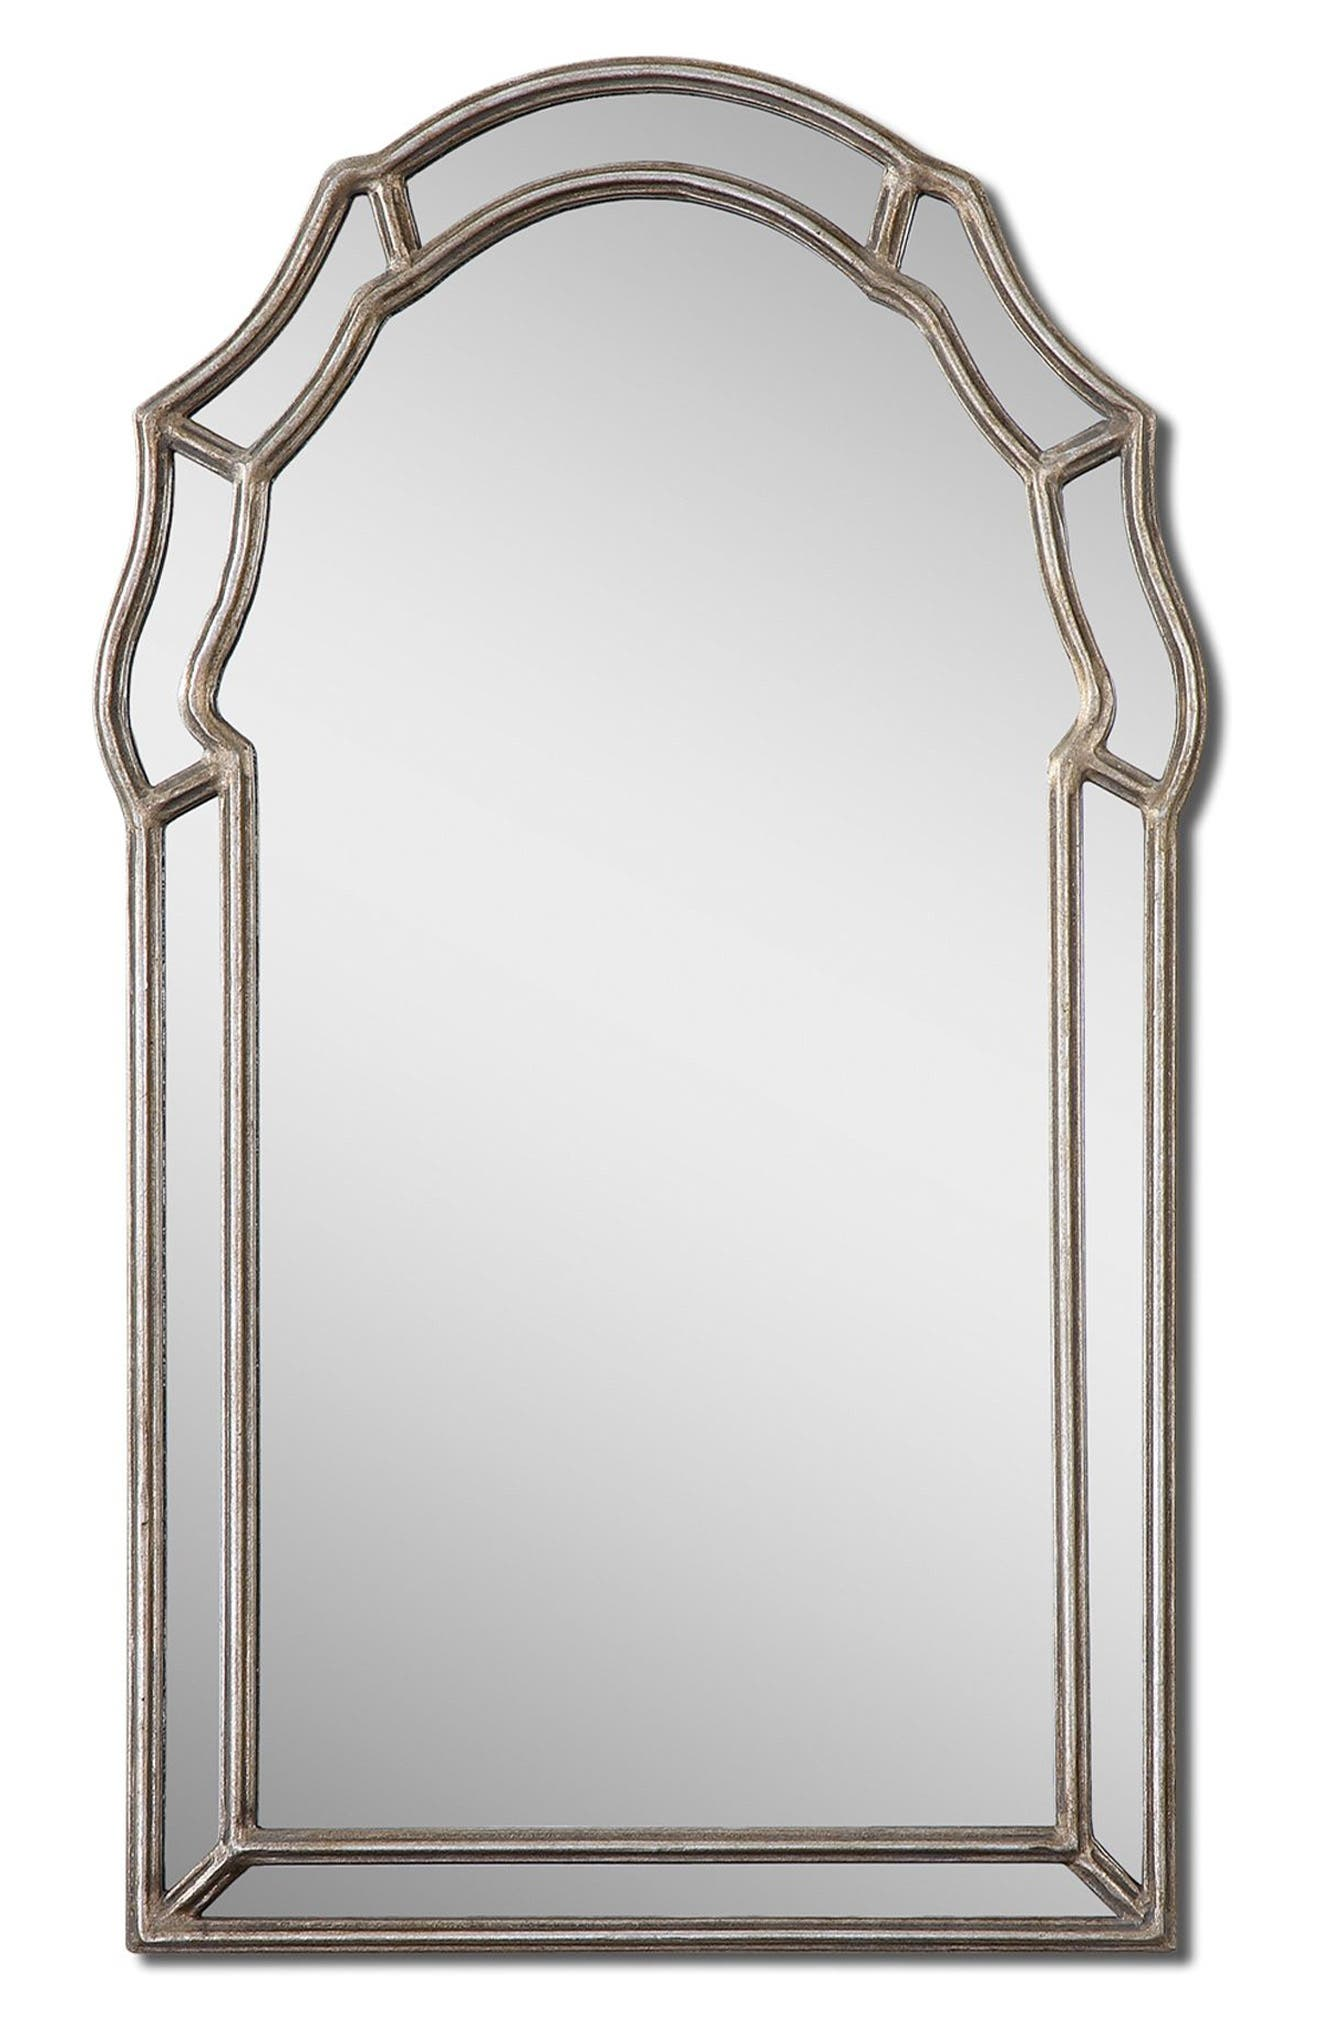 'Petrizzi' Arch Mirror,                             Alternate thumbnail 4, color,                             020